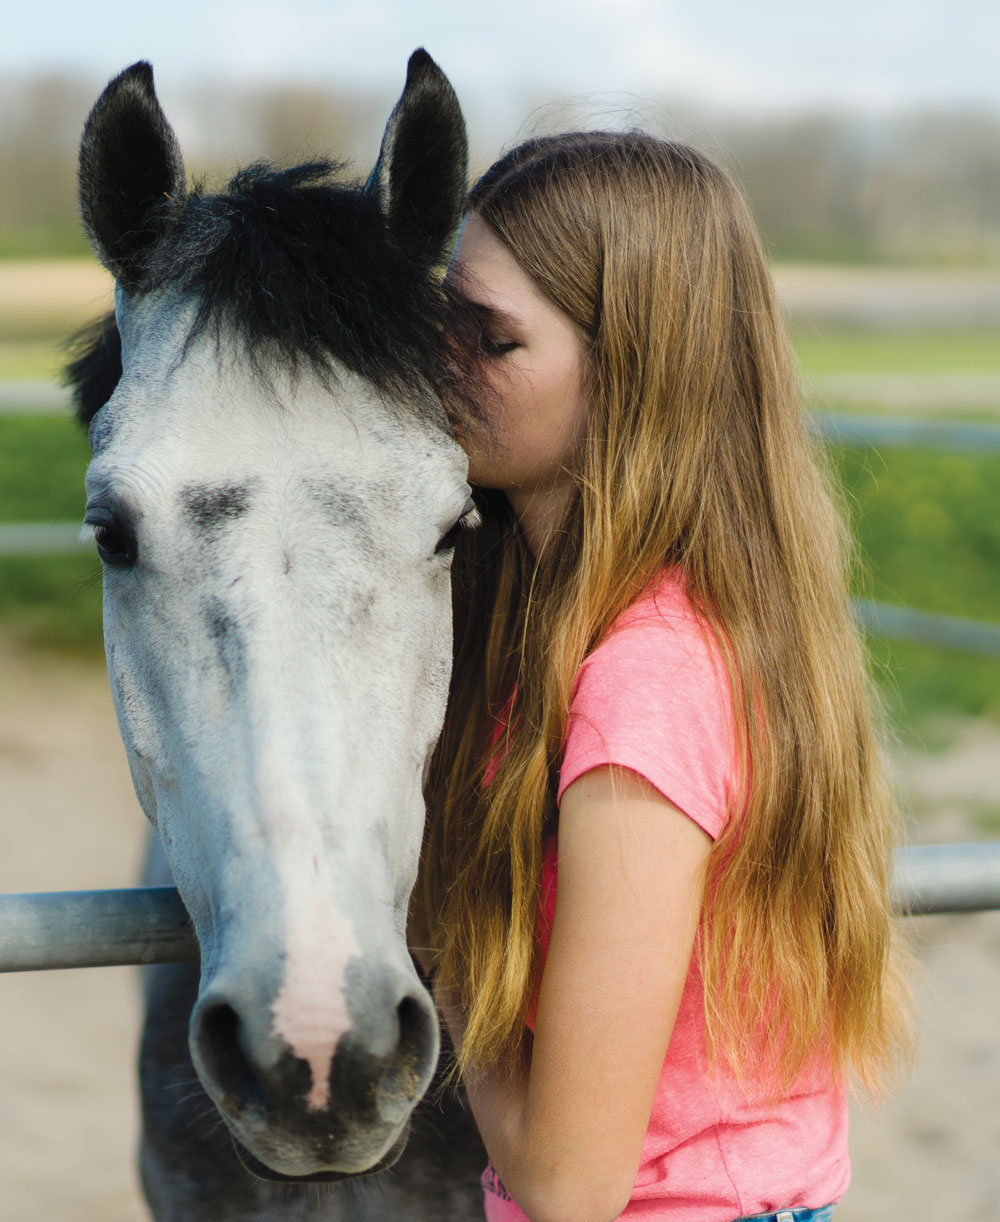 Girl with gray horse